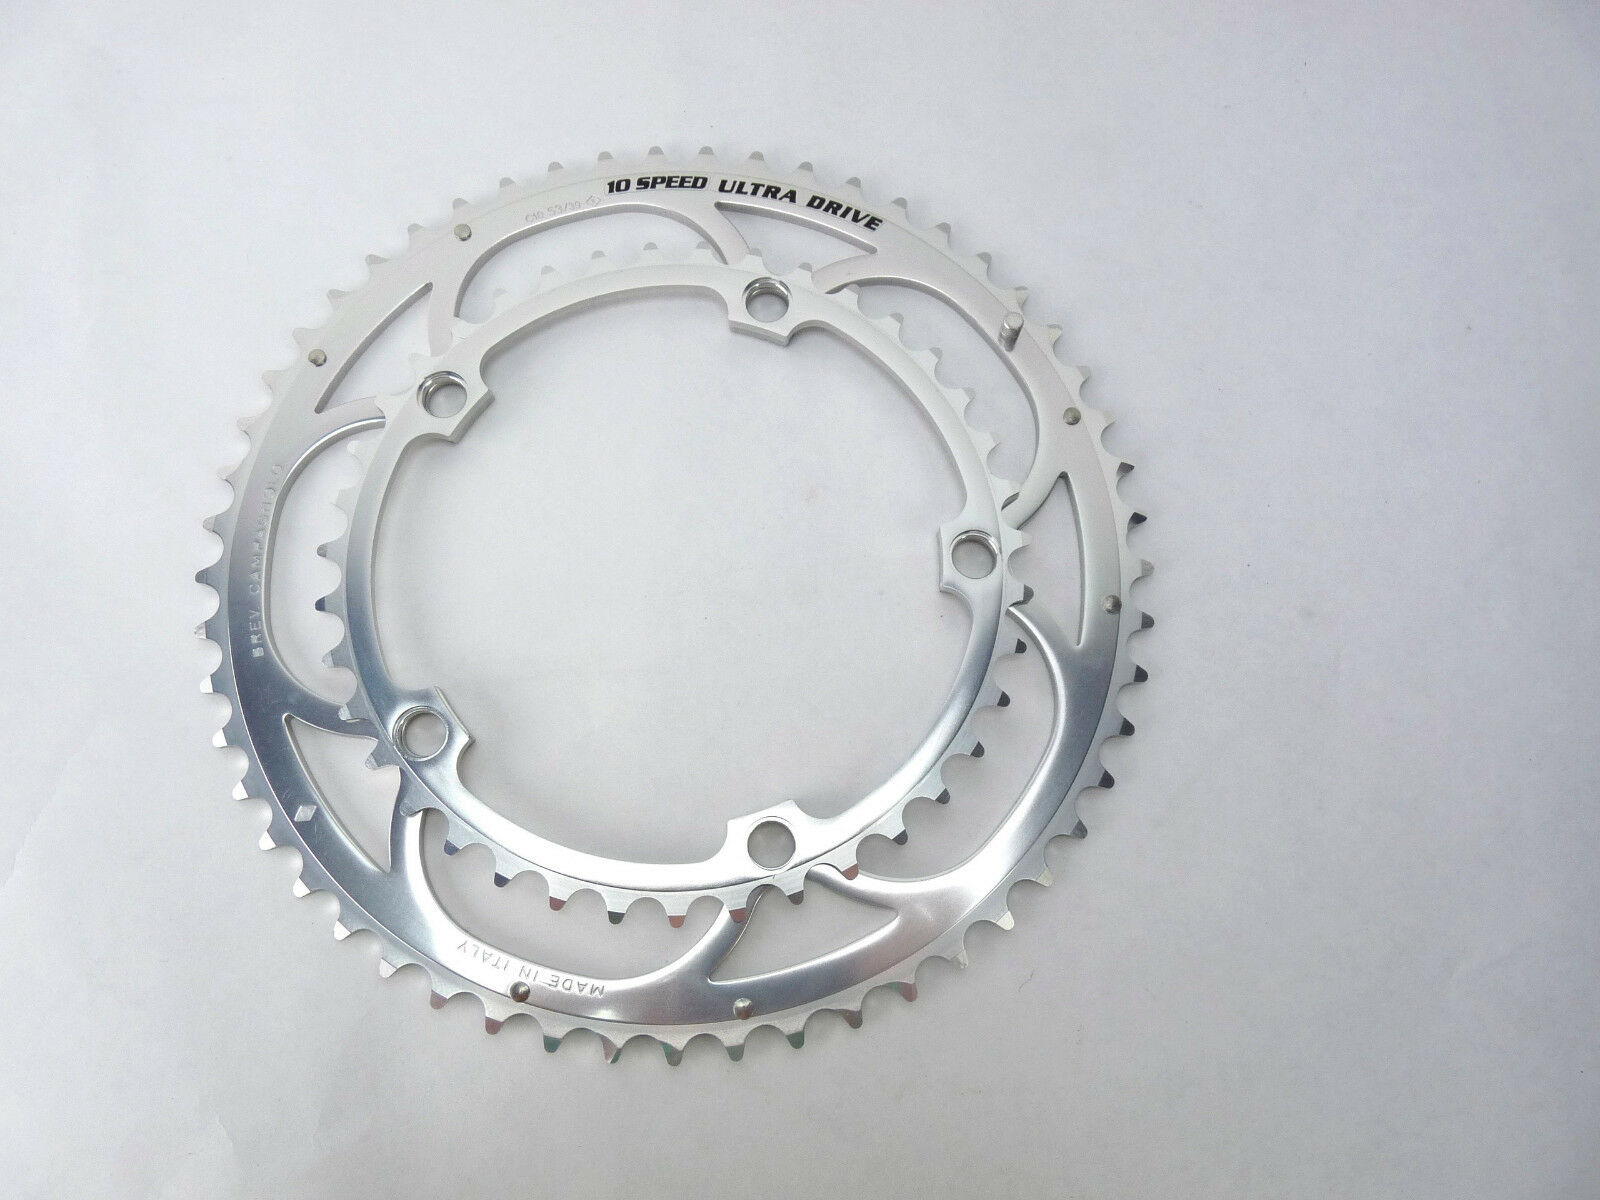 Campagnolo 10 speed Ultra Drive Chainring set 53 39T Road Bike NOS